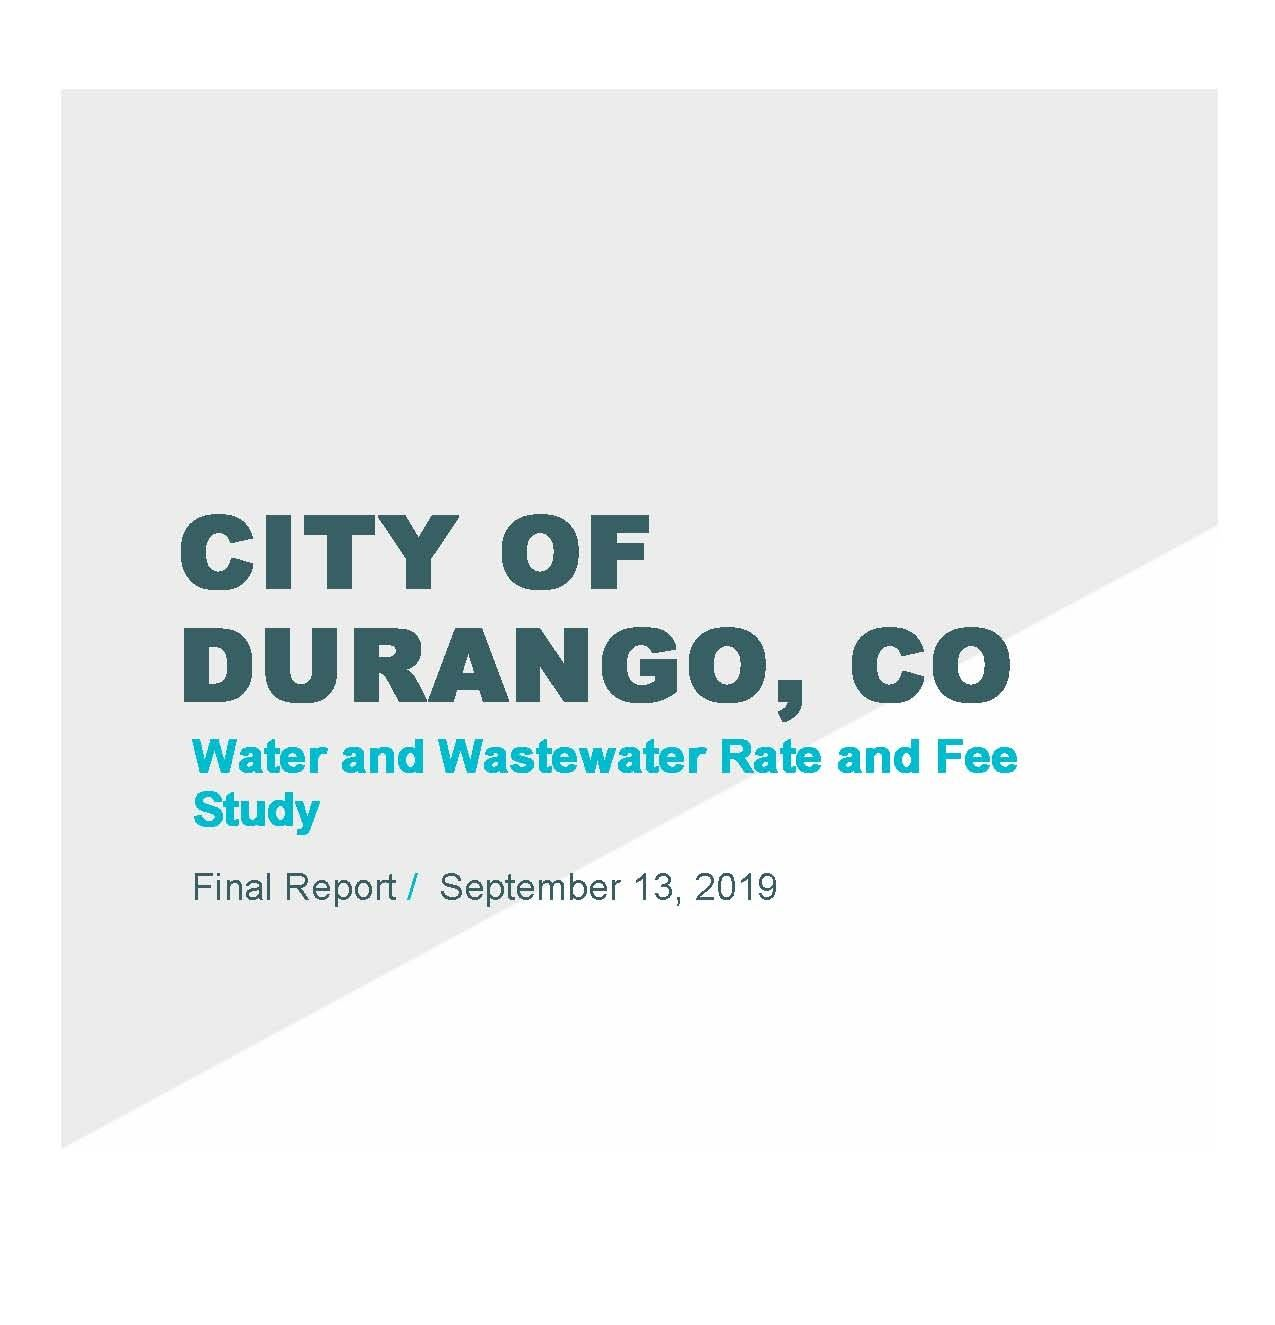 City of Durango Rate and Fee Study 2019